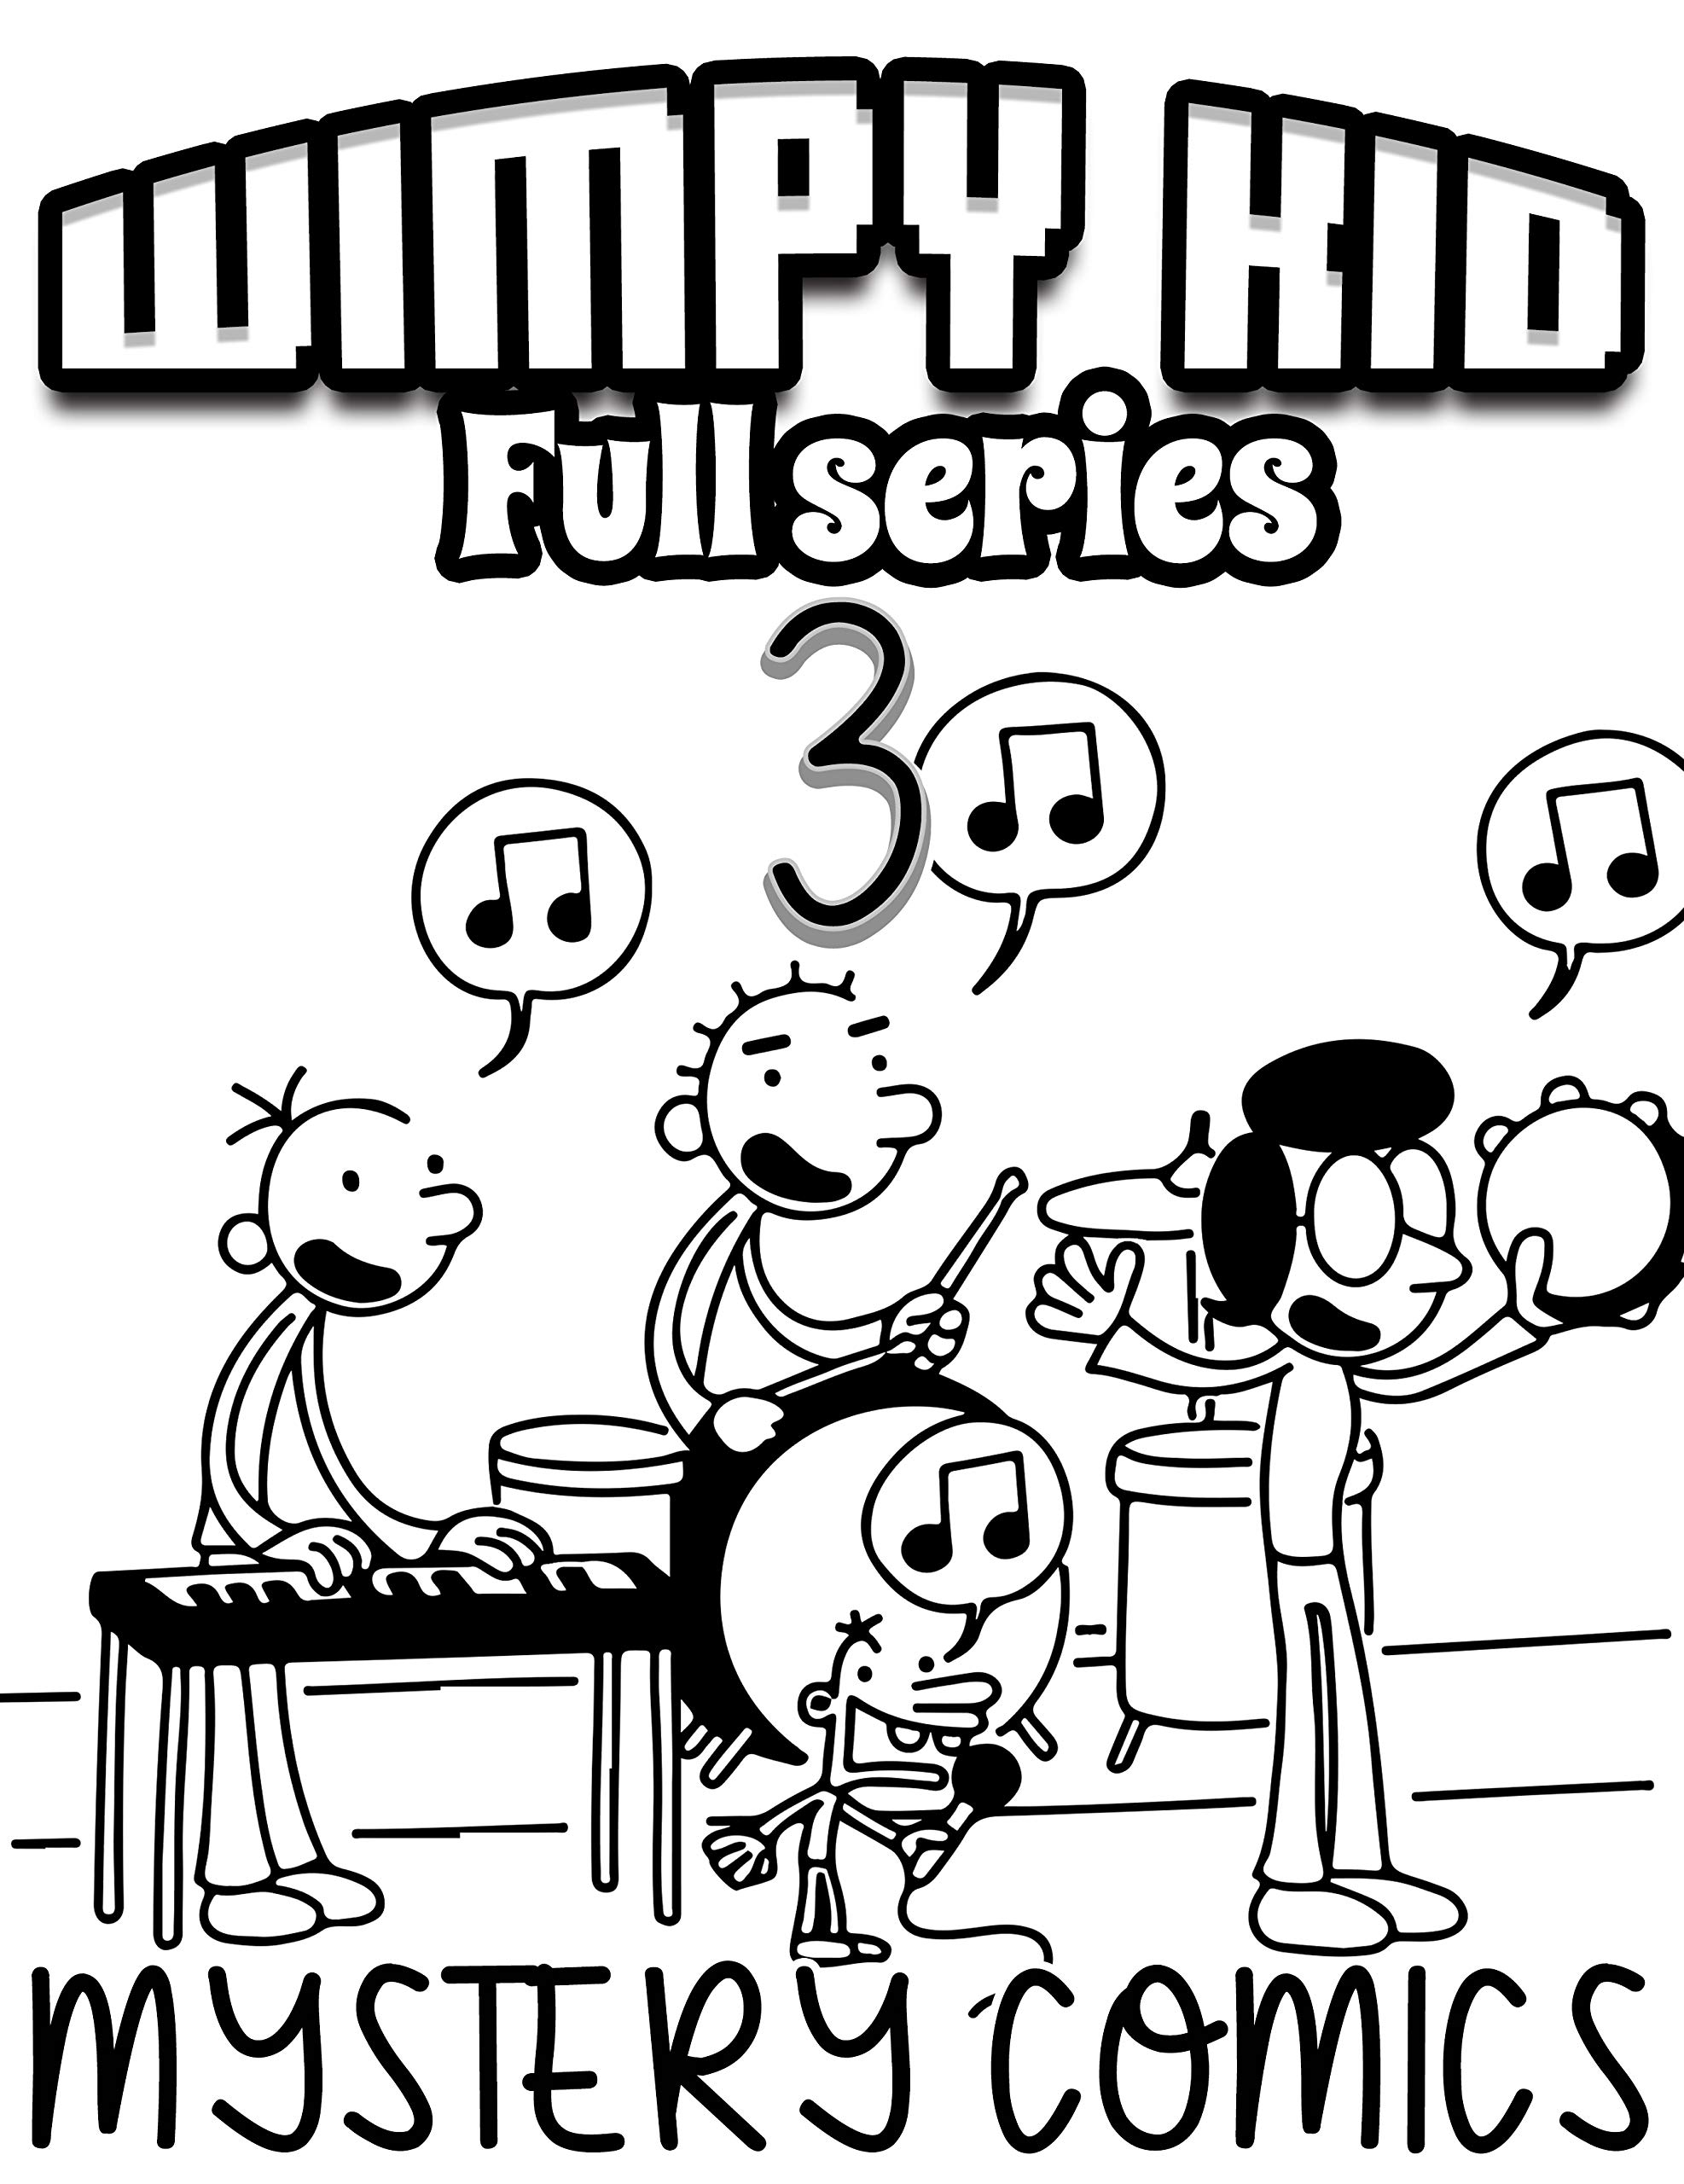 Mystery comics Wimpy kid Full series: Funny Wimpy kid Limited Edition Vol 3